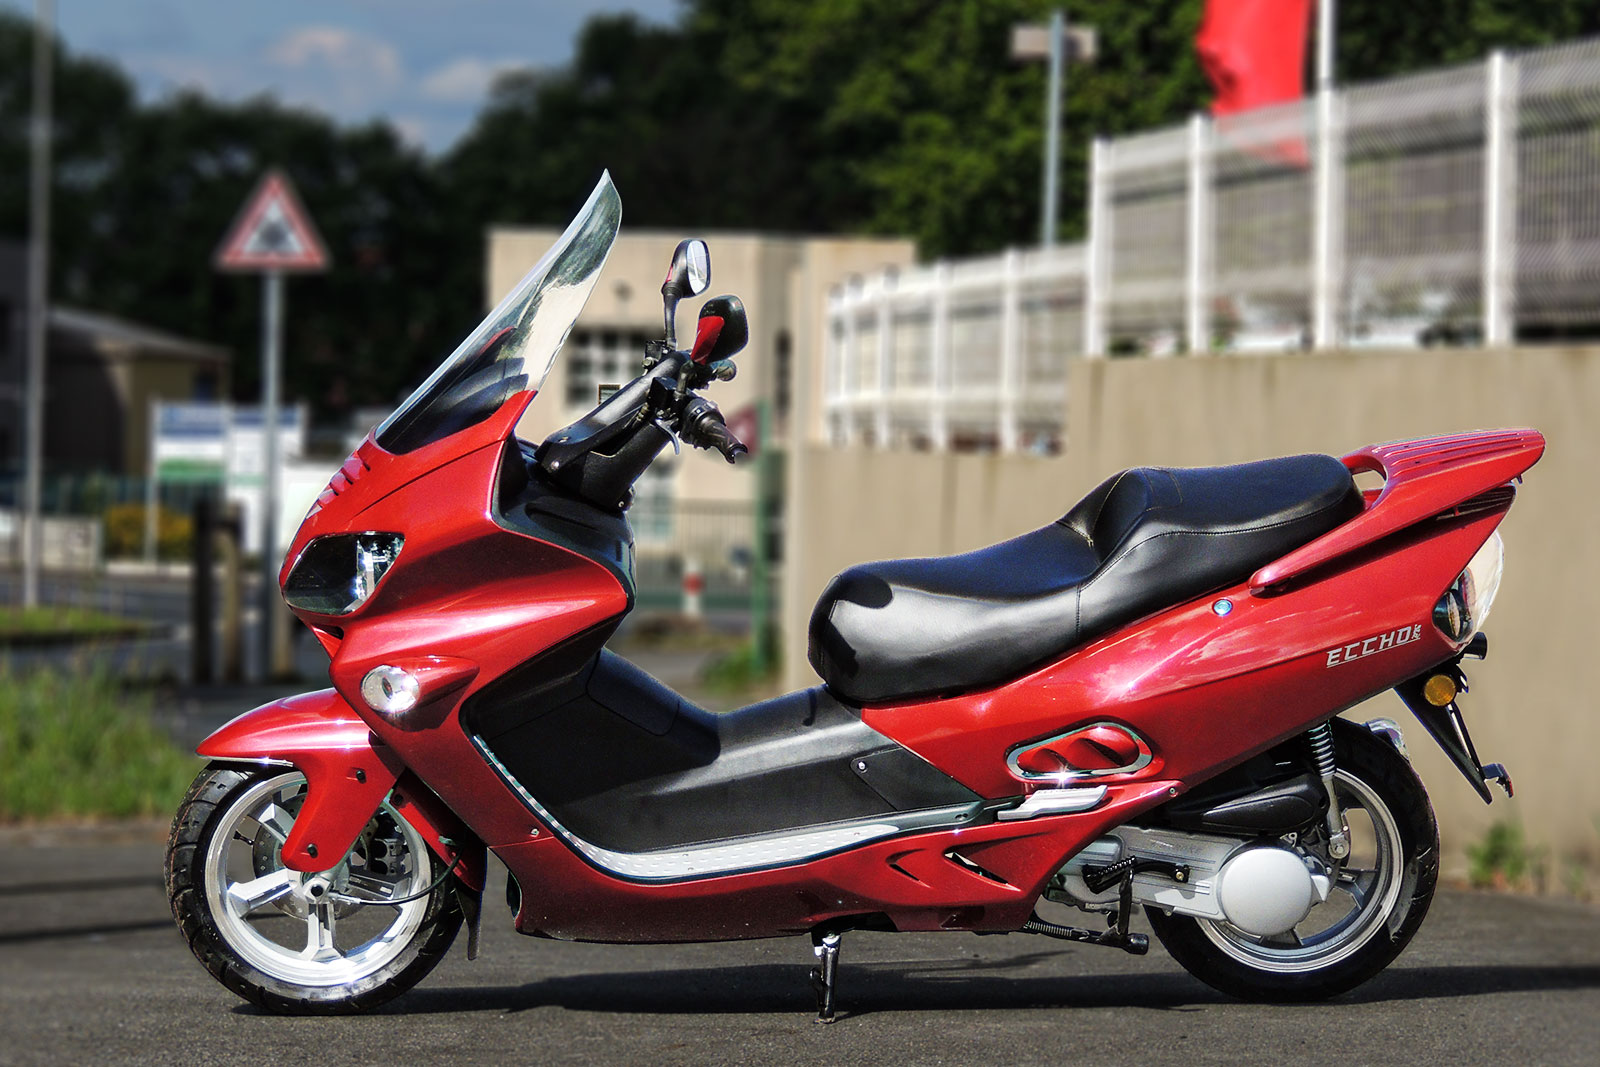 SCOOTER-125-ECCHO-GT-STAR-BORDEAUX-03